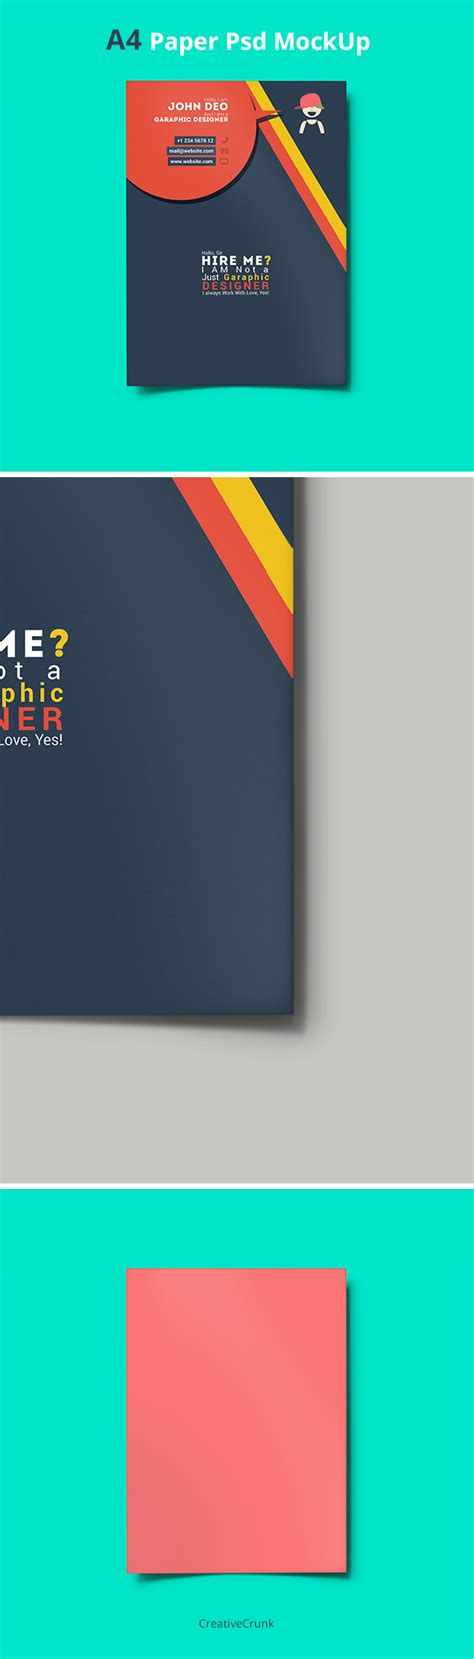 16 A4 PSD Mockup Templates Images Flyer Mock Up Template